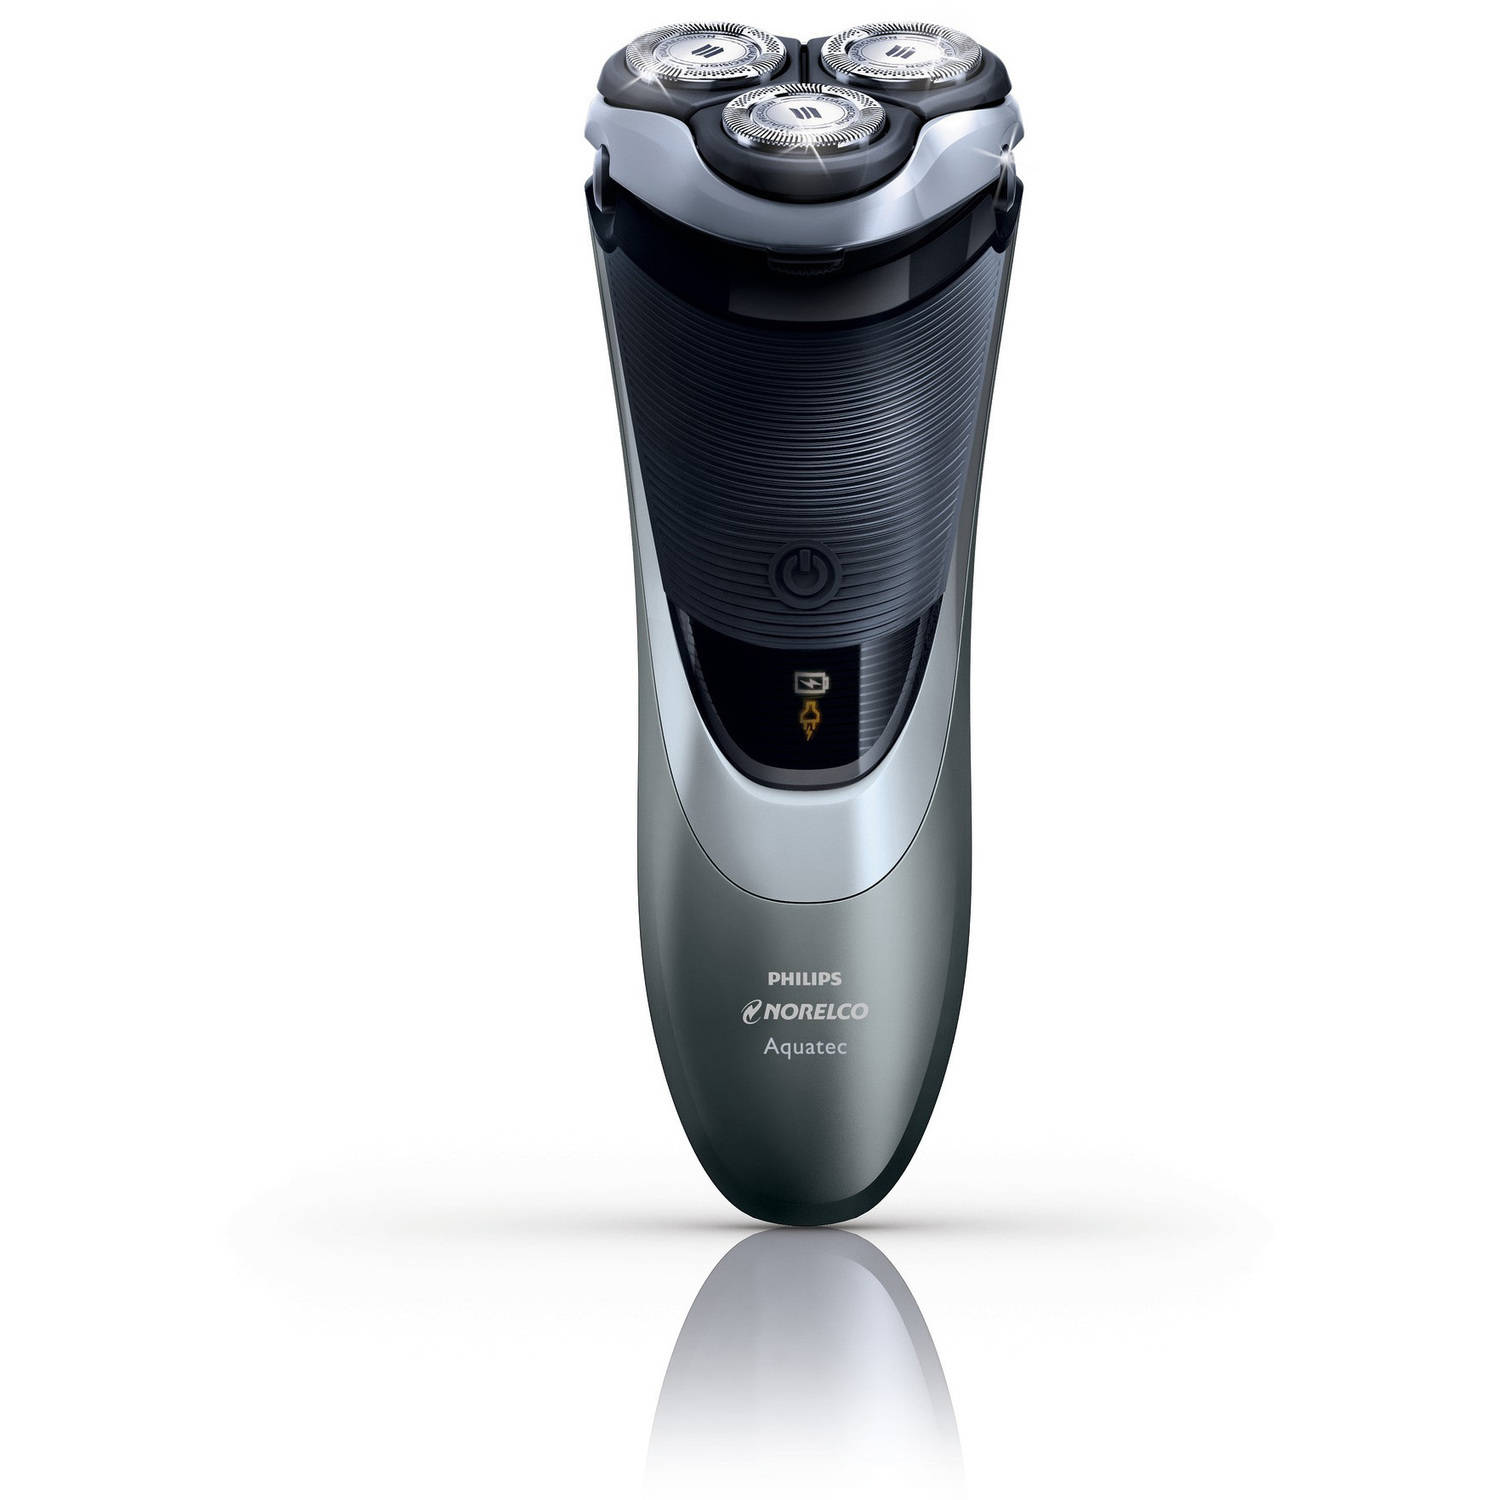 Philips Norelco Rotary Men's Electric Shaver 4500, AT830/41